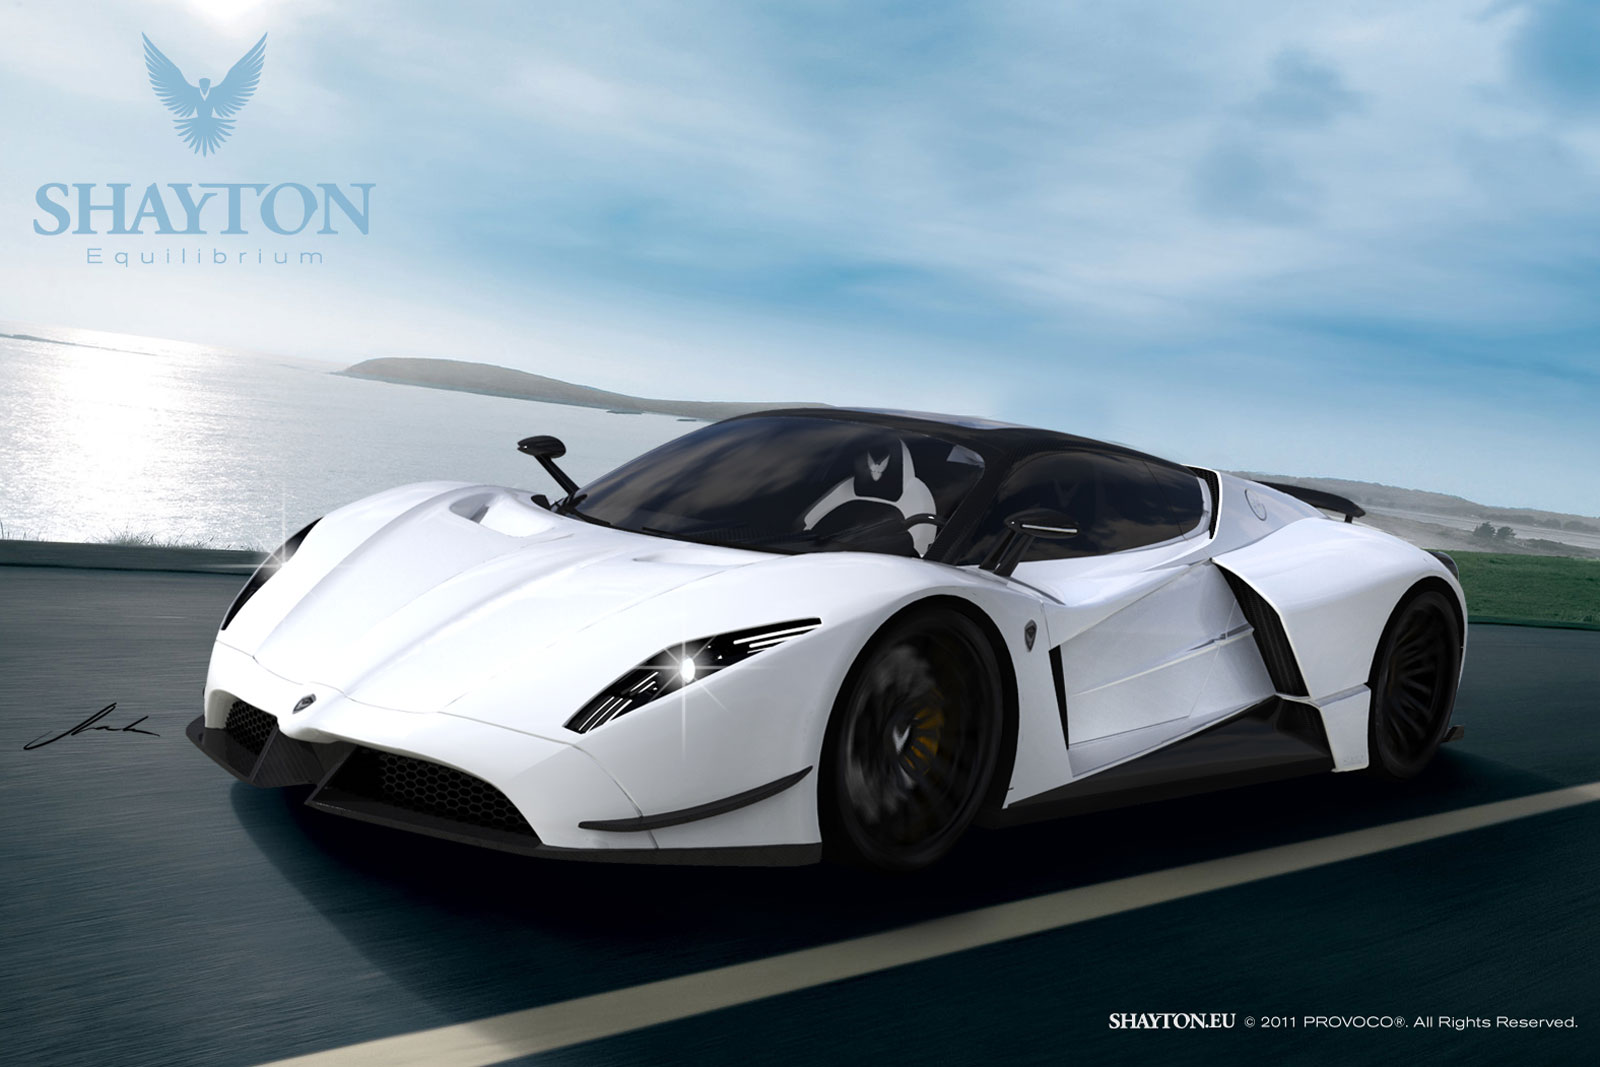 Shayton Equilibrium 15 Shayton Equilibrium the new supercar from the Slovenian Company